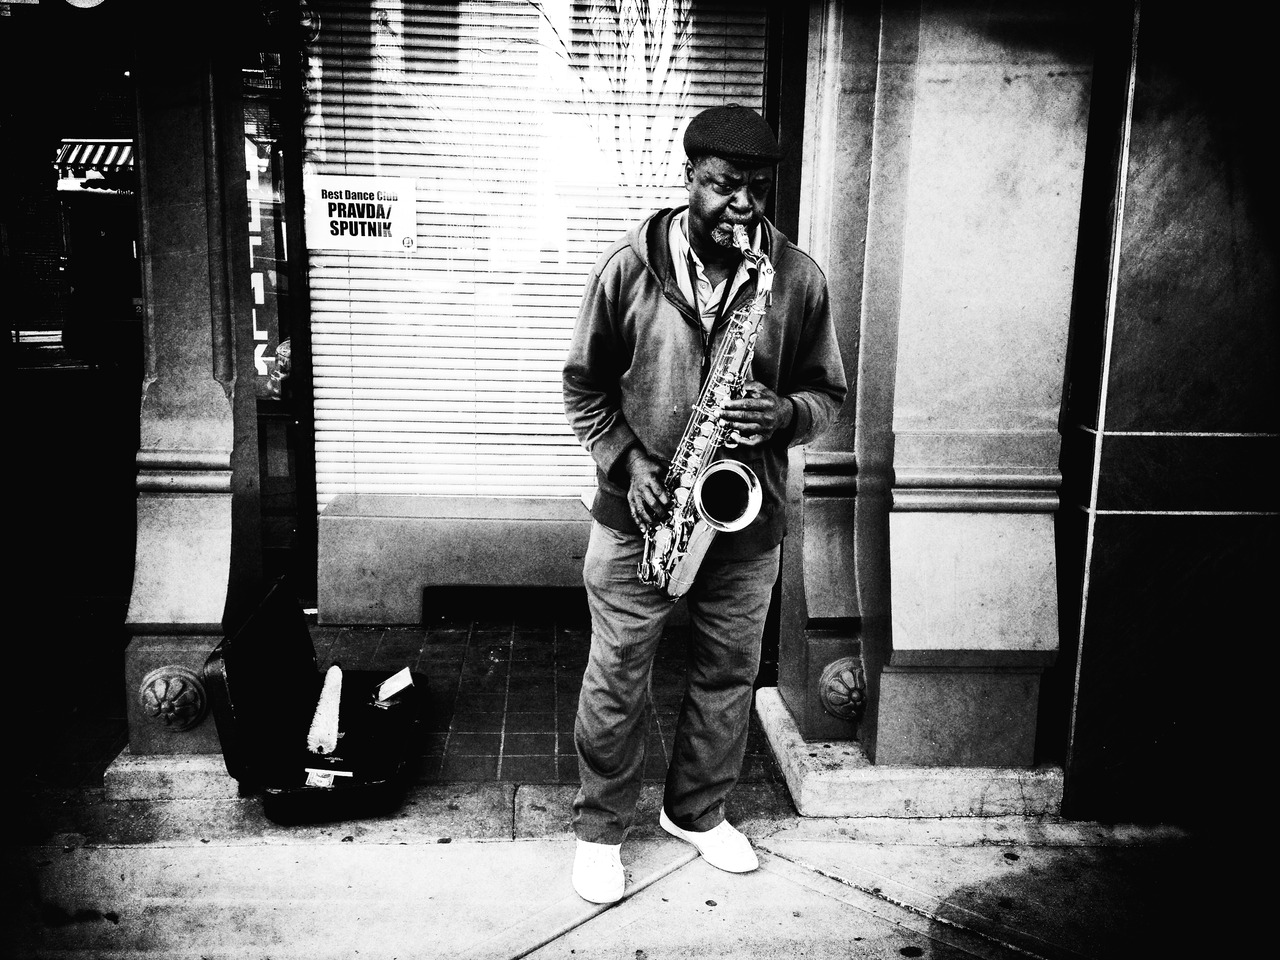 Glen Tunes - #peppersearching #pepper #photos #sax #music #streetmusic #culture